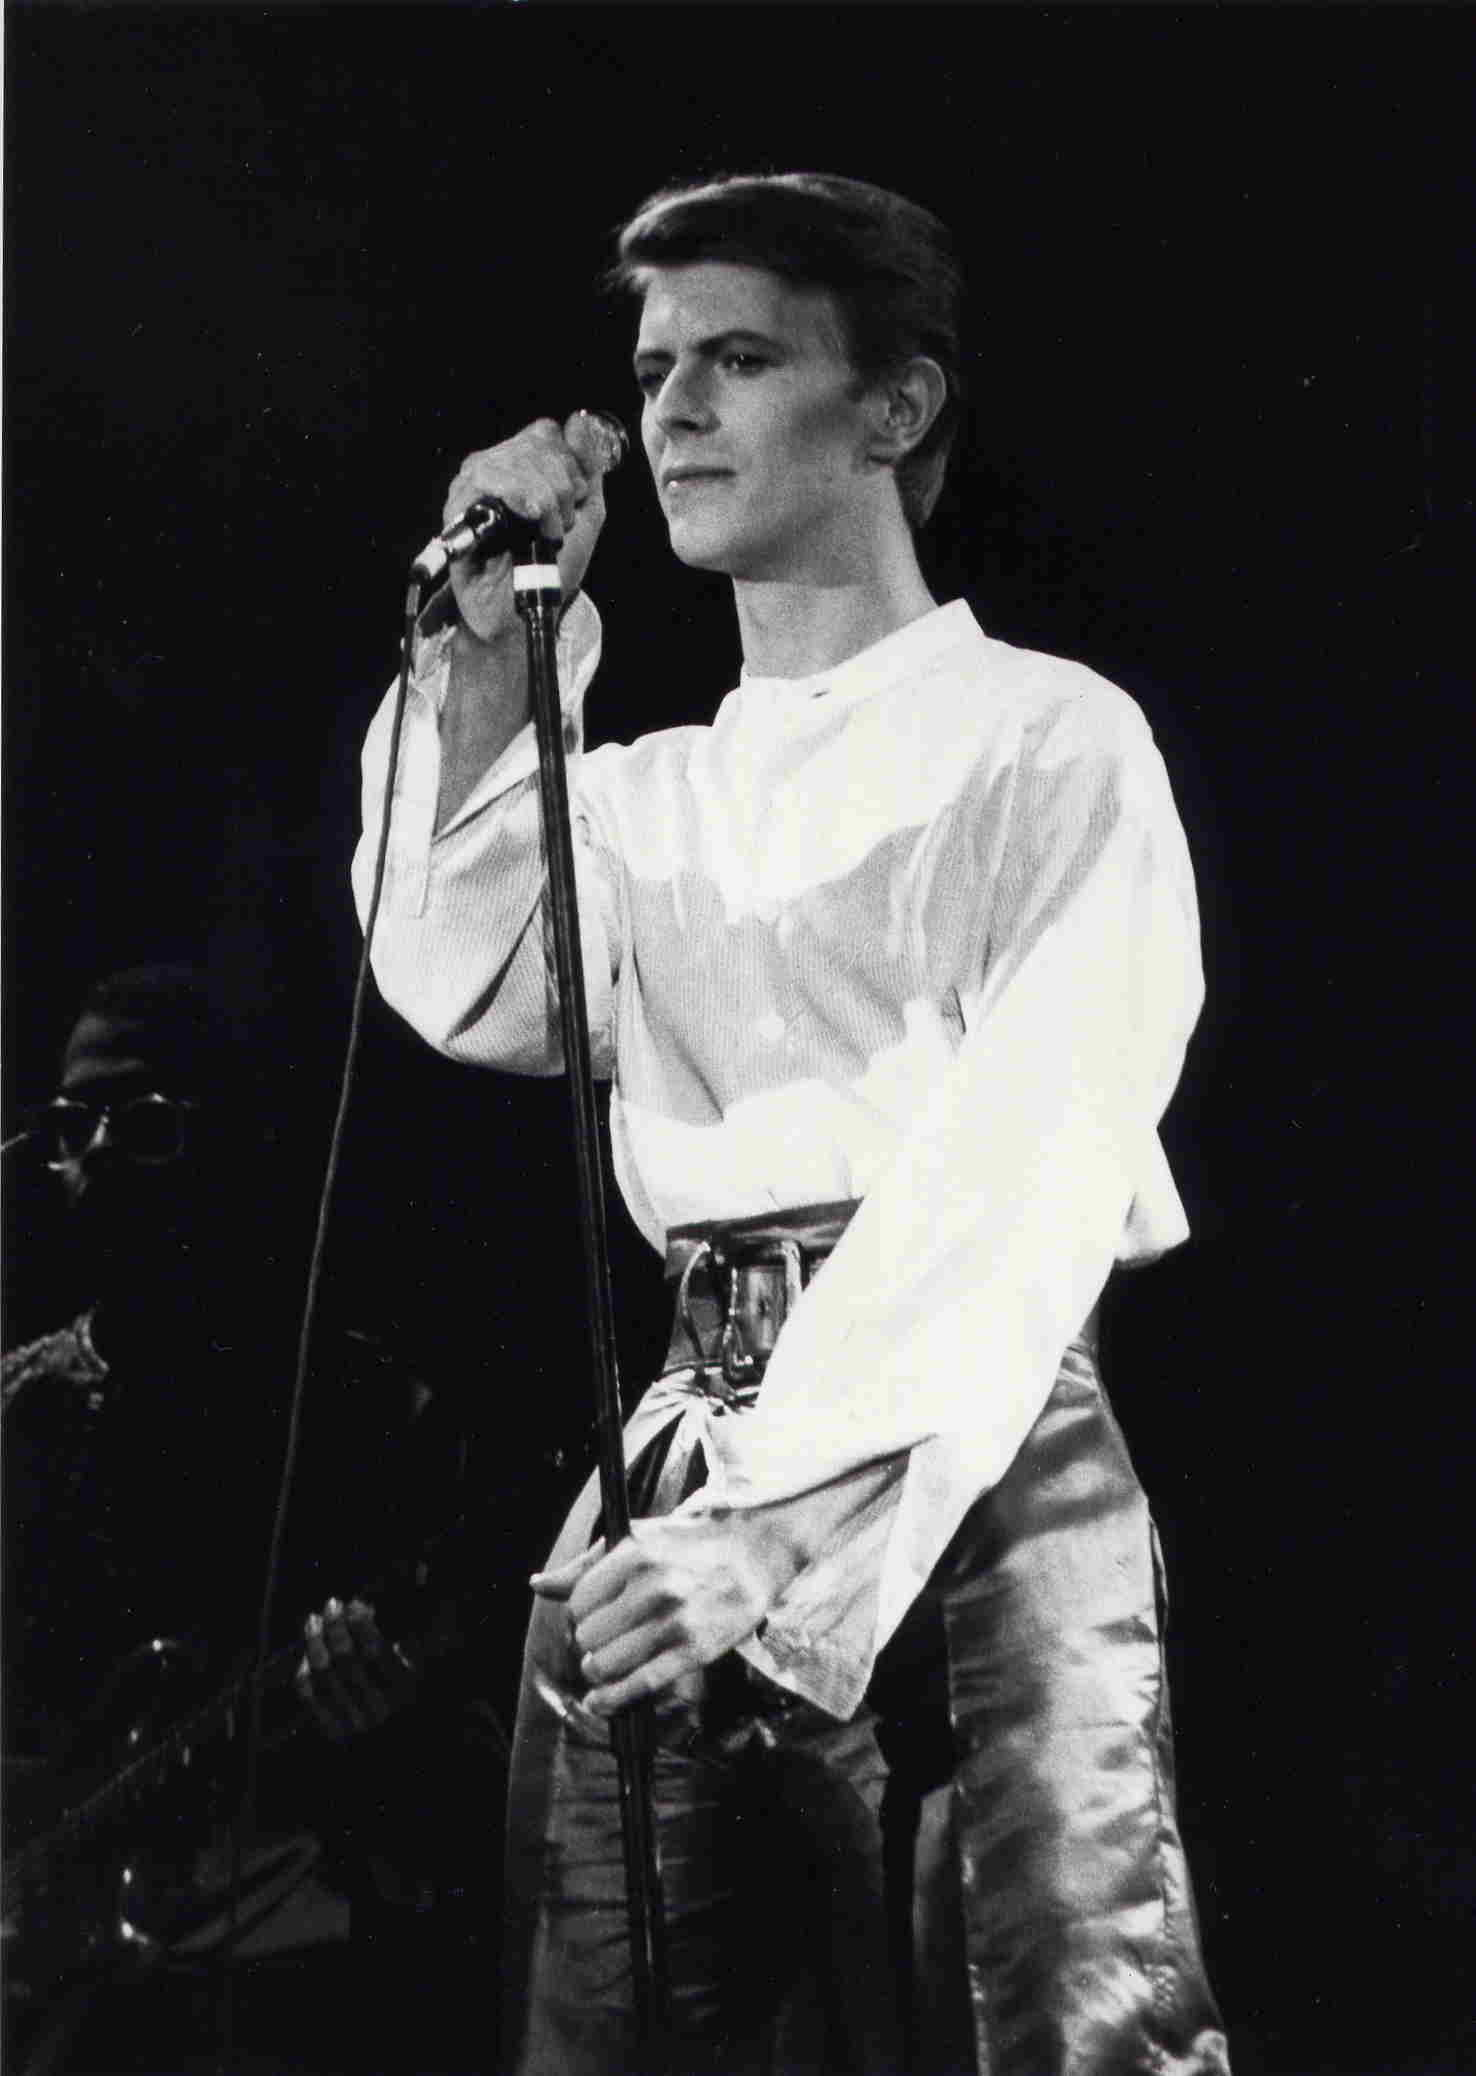 David Bowie - Heroes tour - 1978 - Paris Zénith